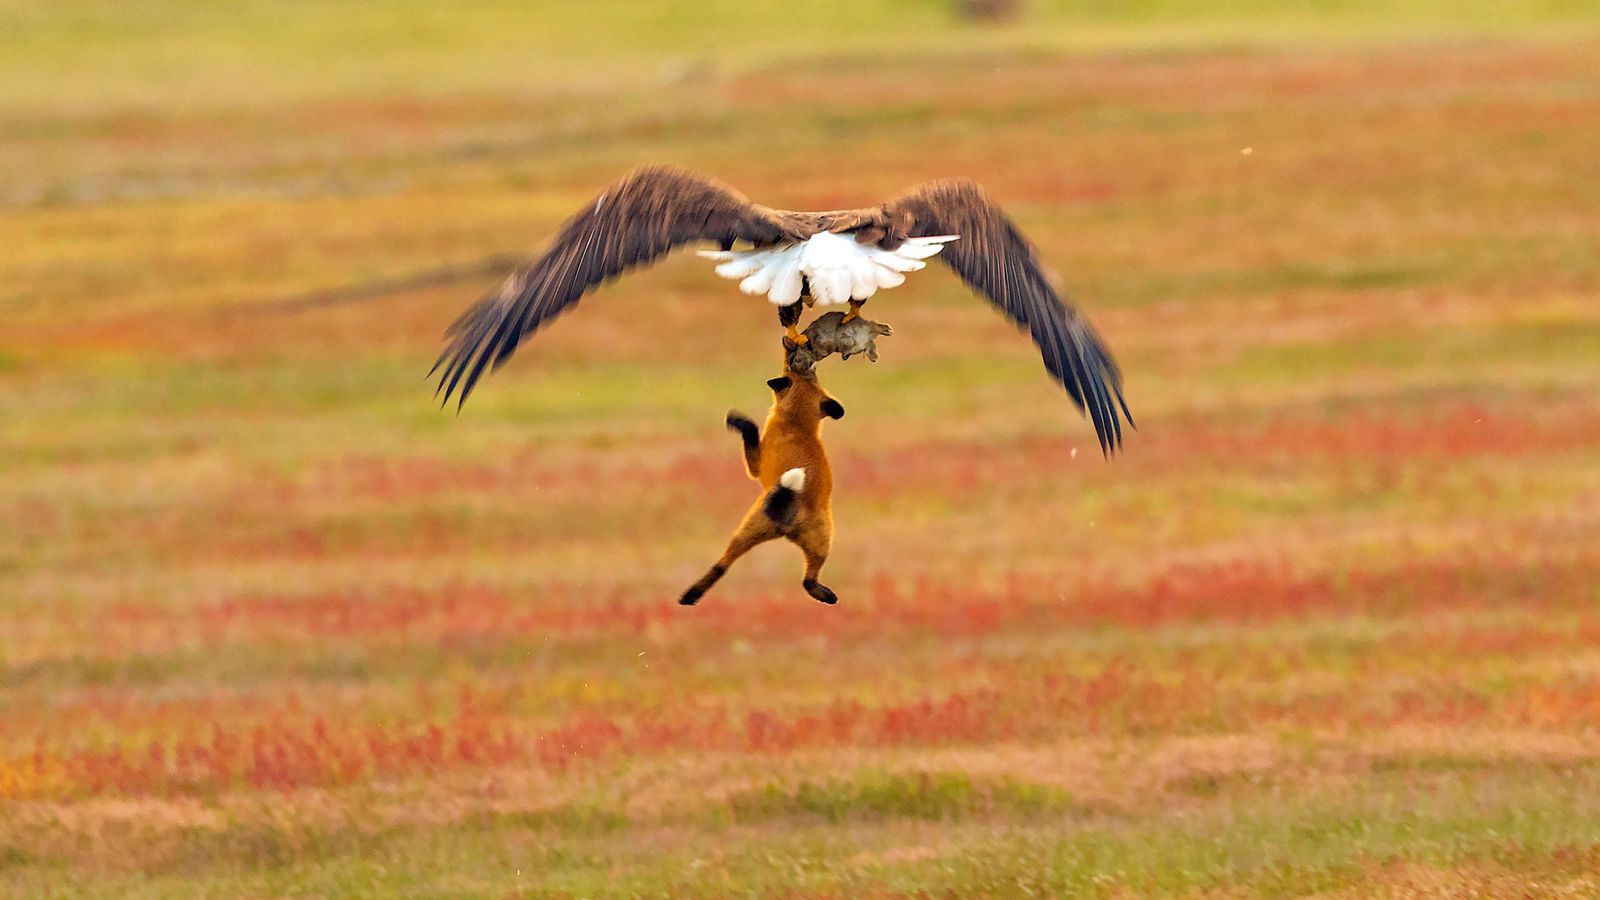 Eagle And Fox In Mid Air Fight News Uk Video News Sky News